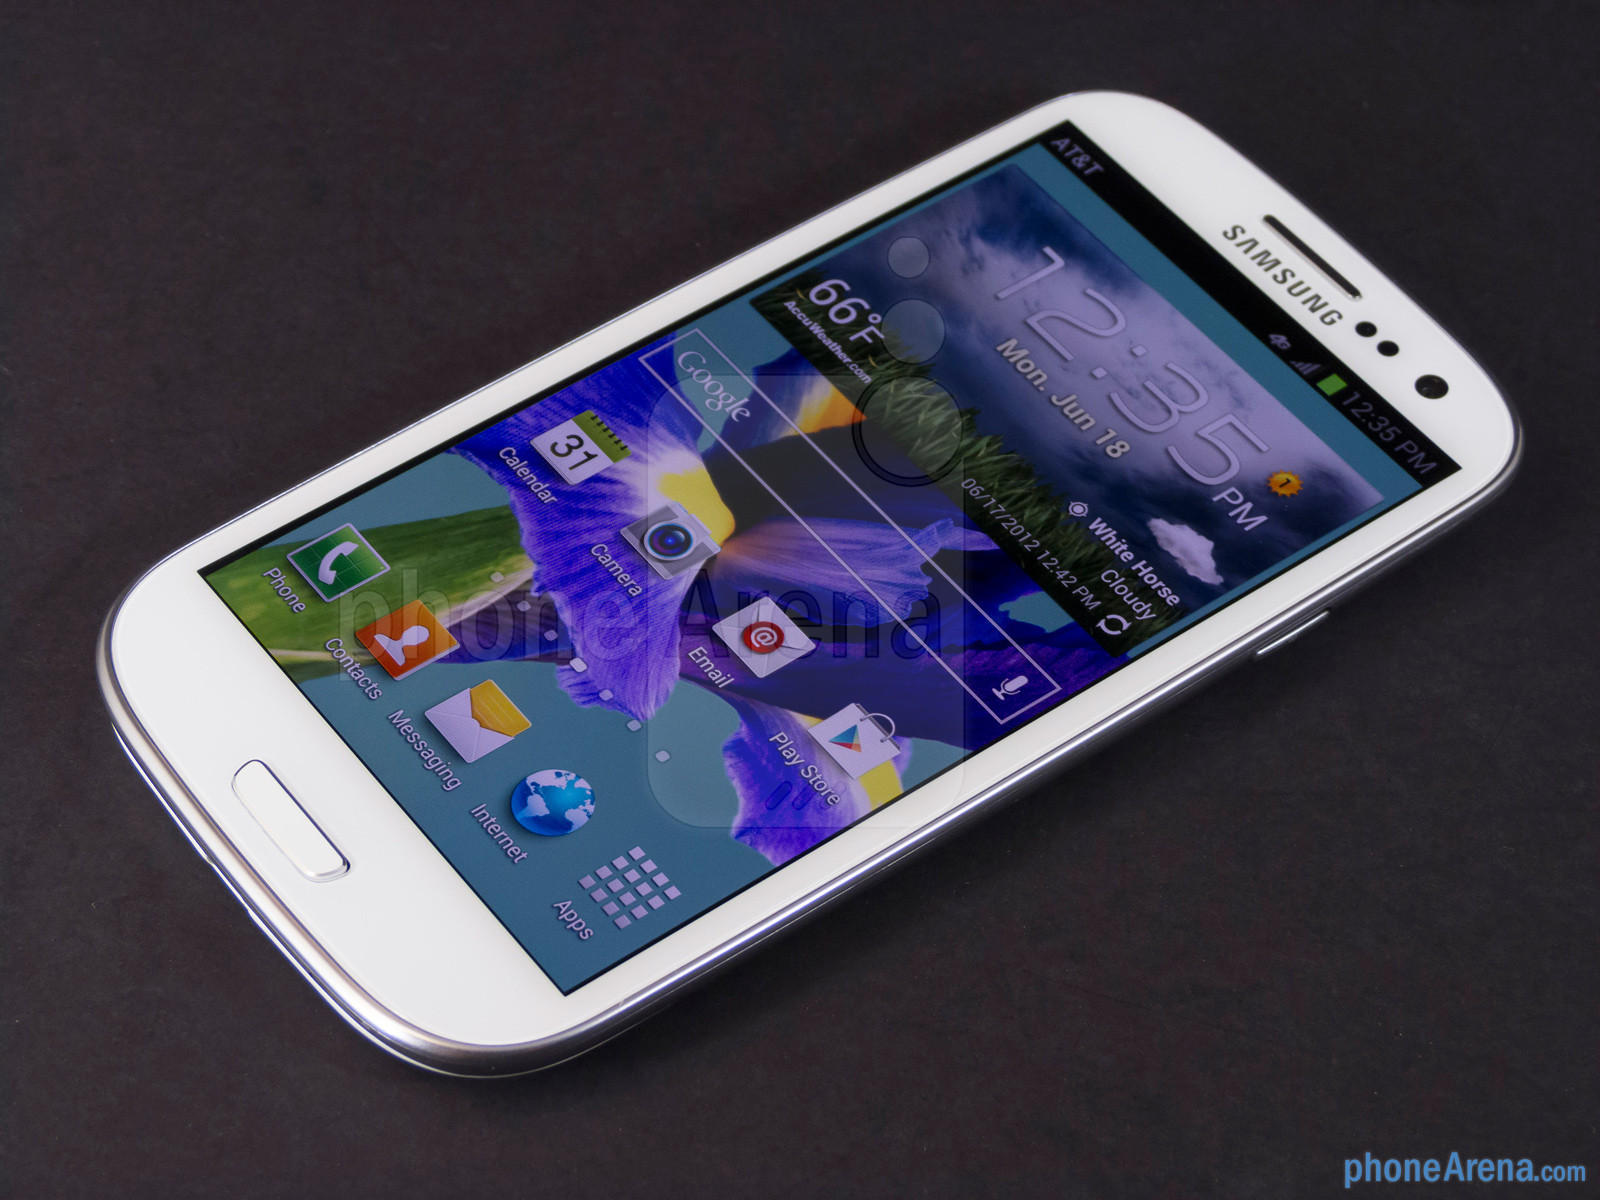 samsung galaxy s4 specs: samsung galaxy s4 wallpaper